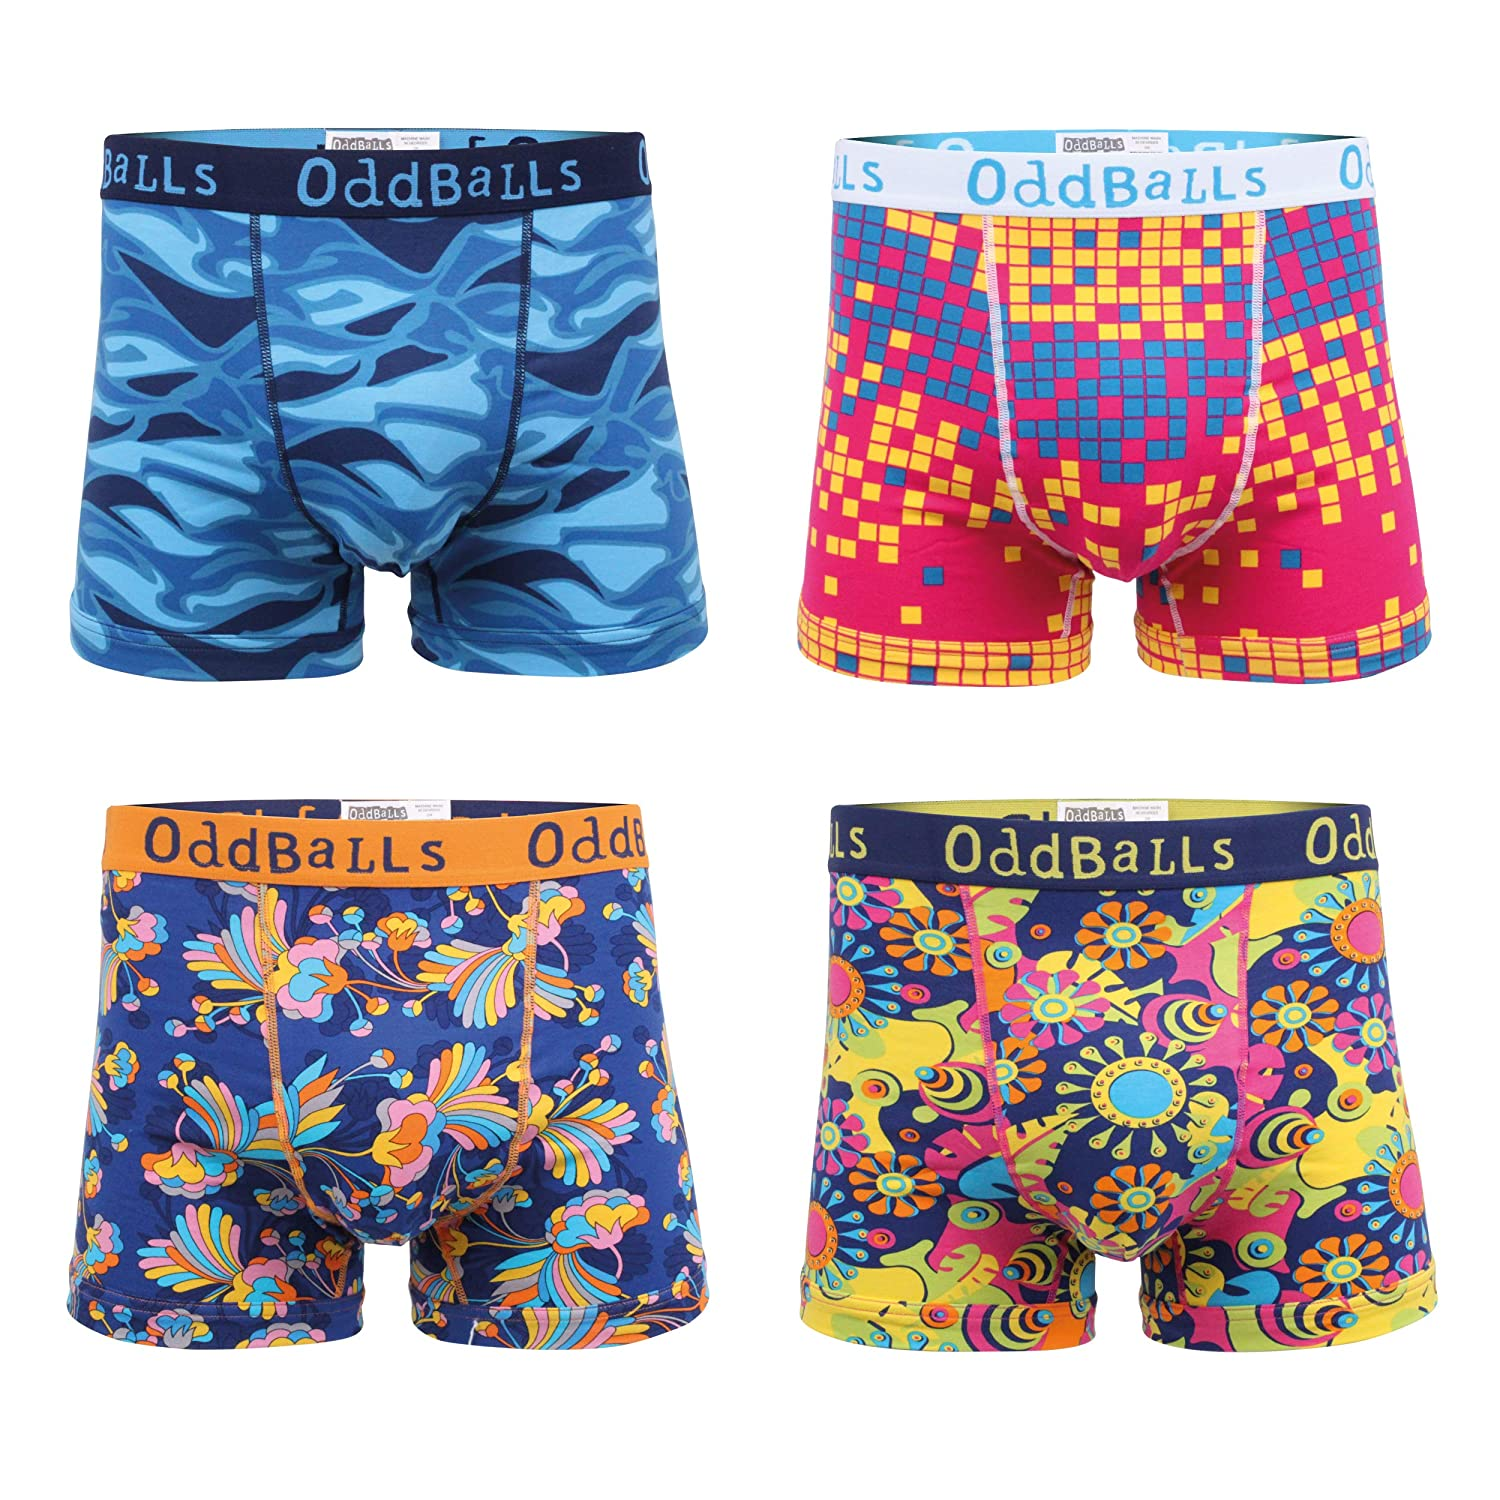 OddBalls Summer Bundle Mens Boxer Shorts